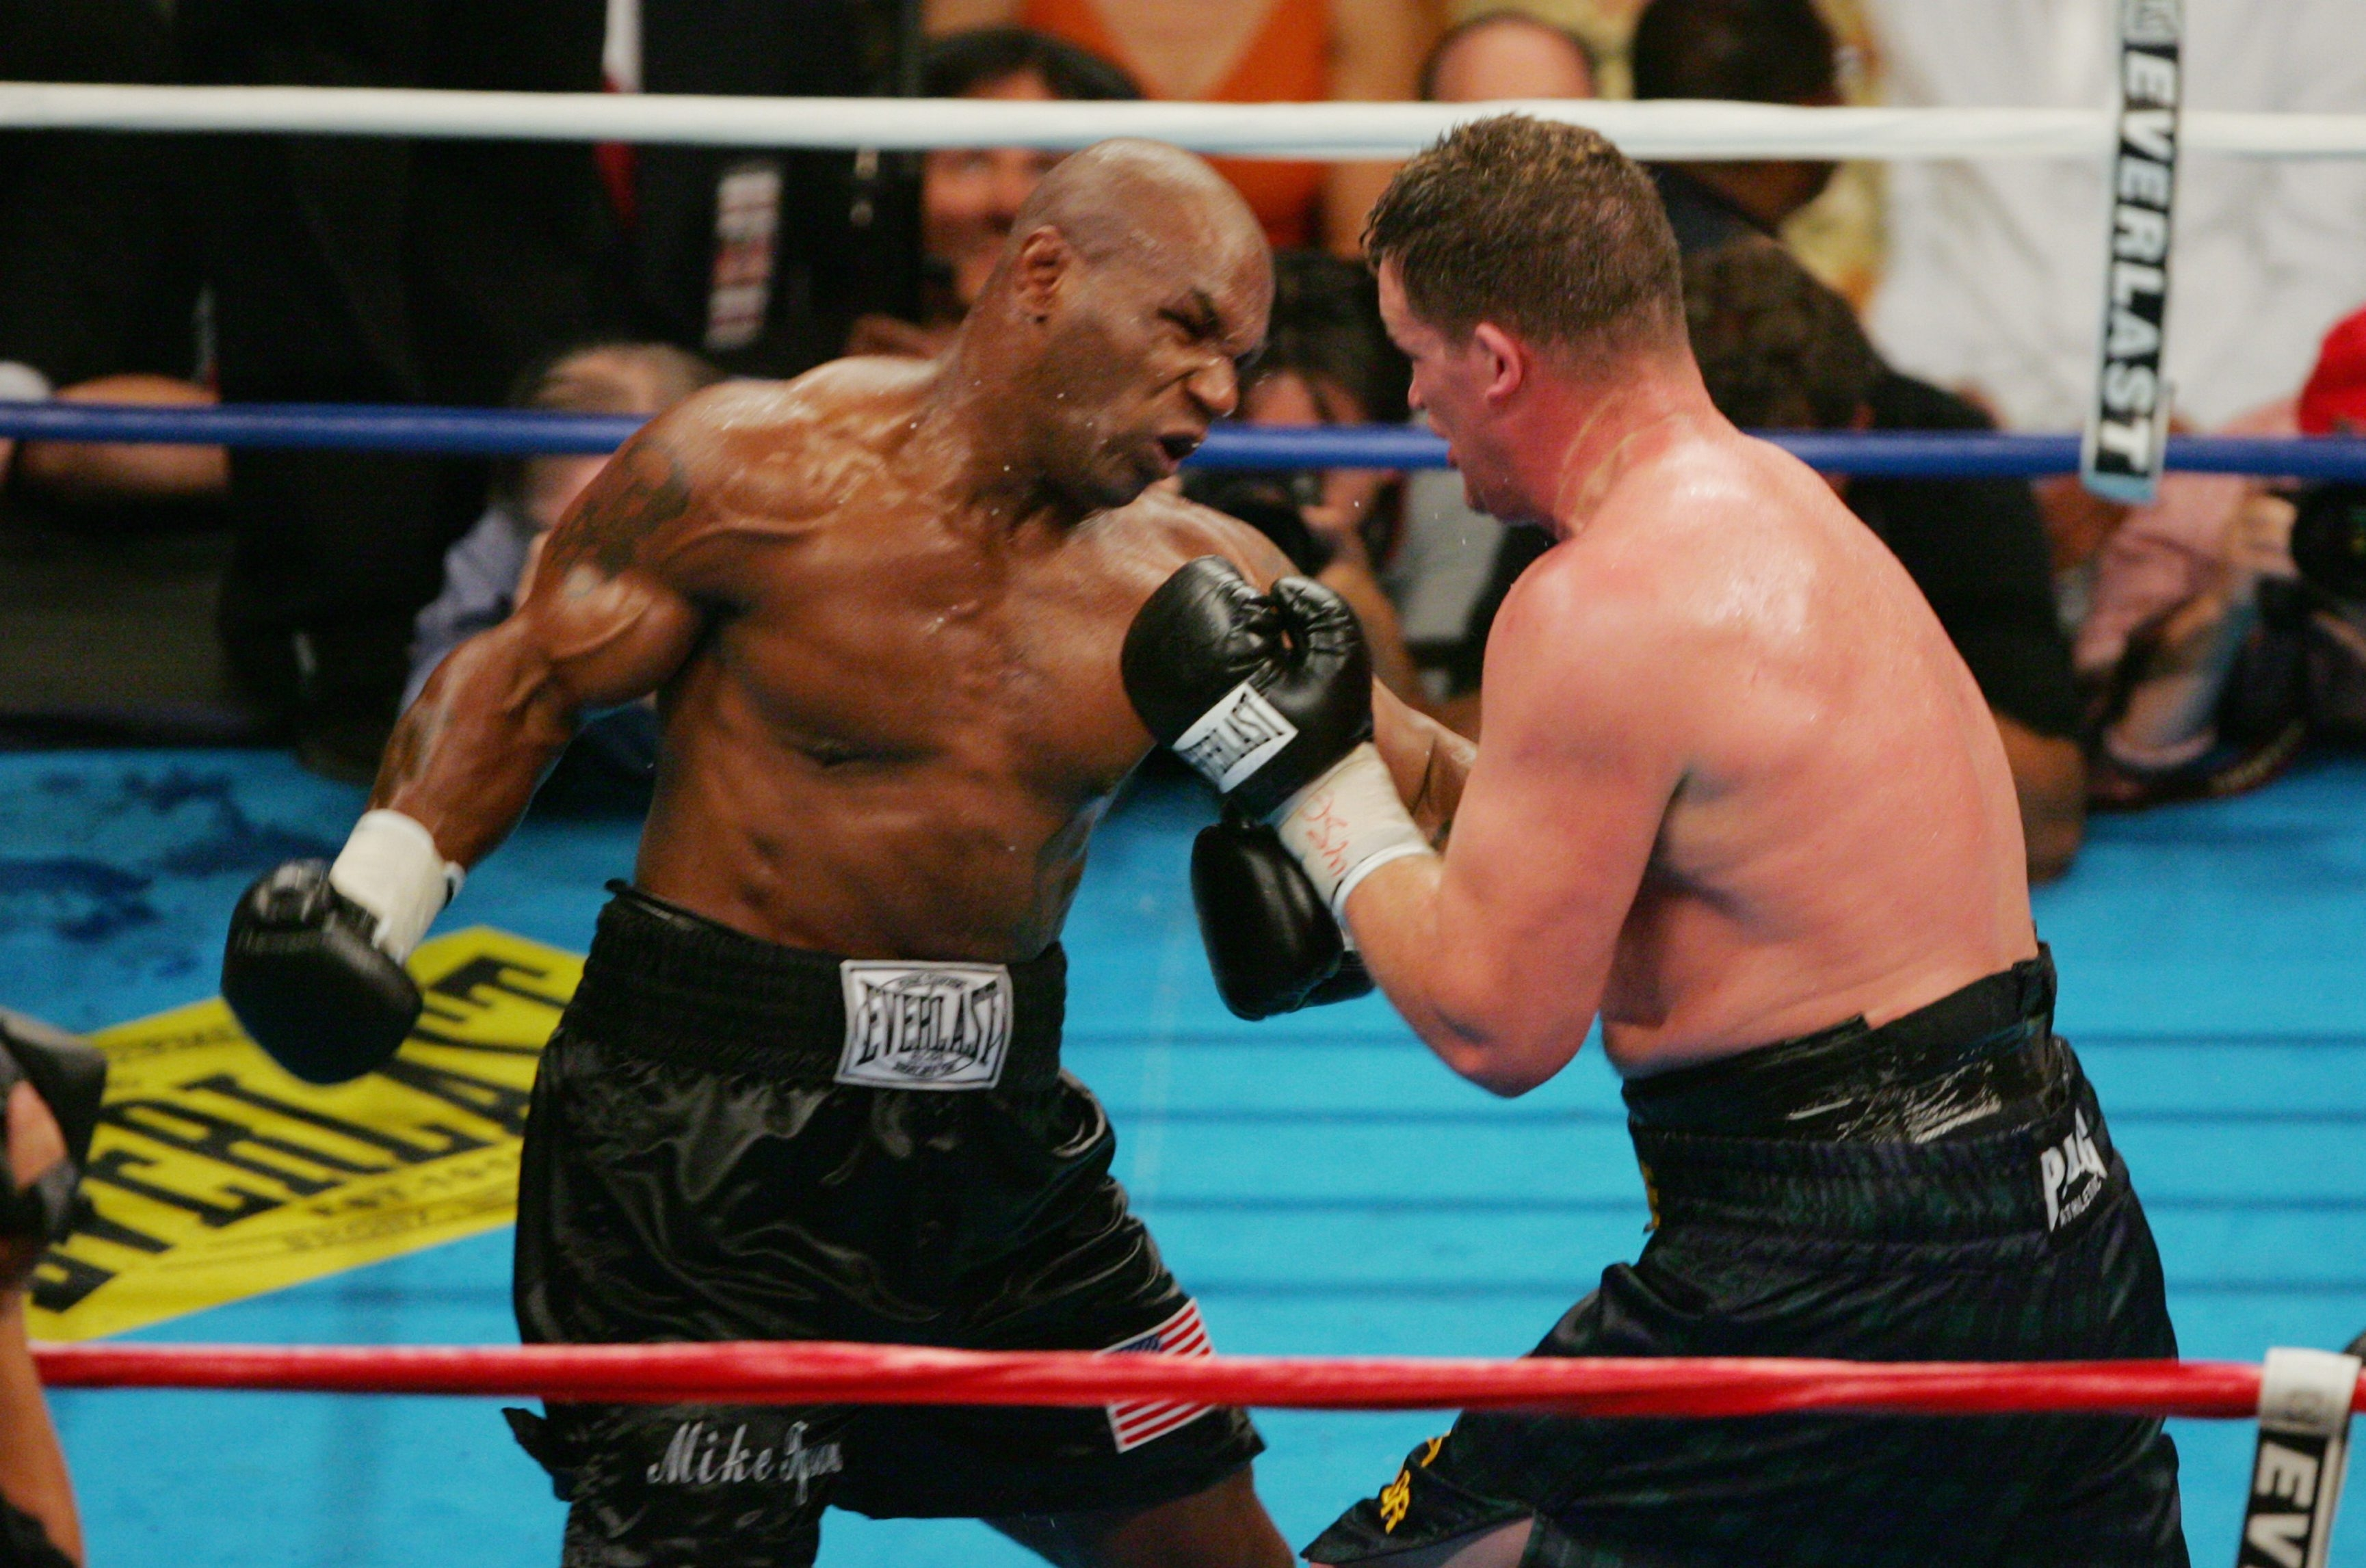 Mike Tyson had some very good moments in his career and some bad ones, like this 2005 fight against Kevin McBride, which he lost.